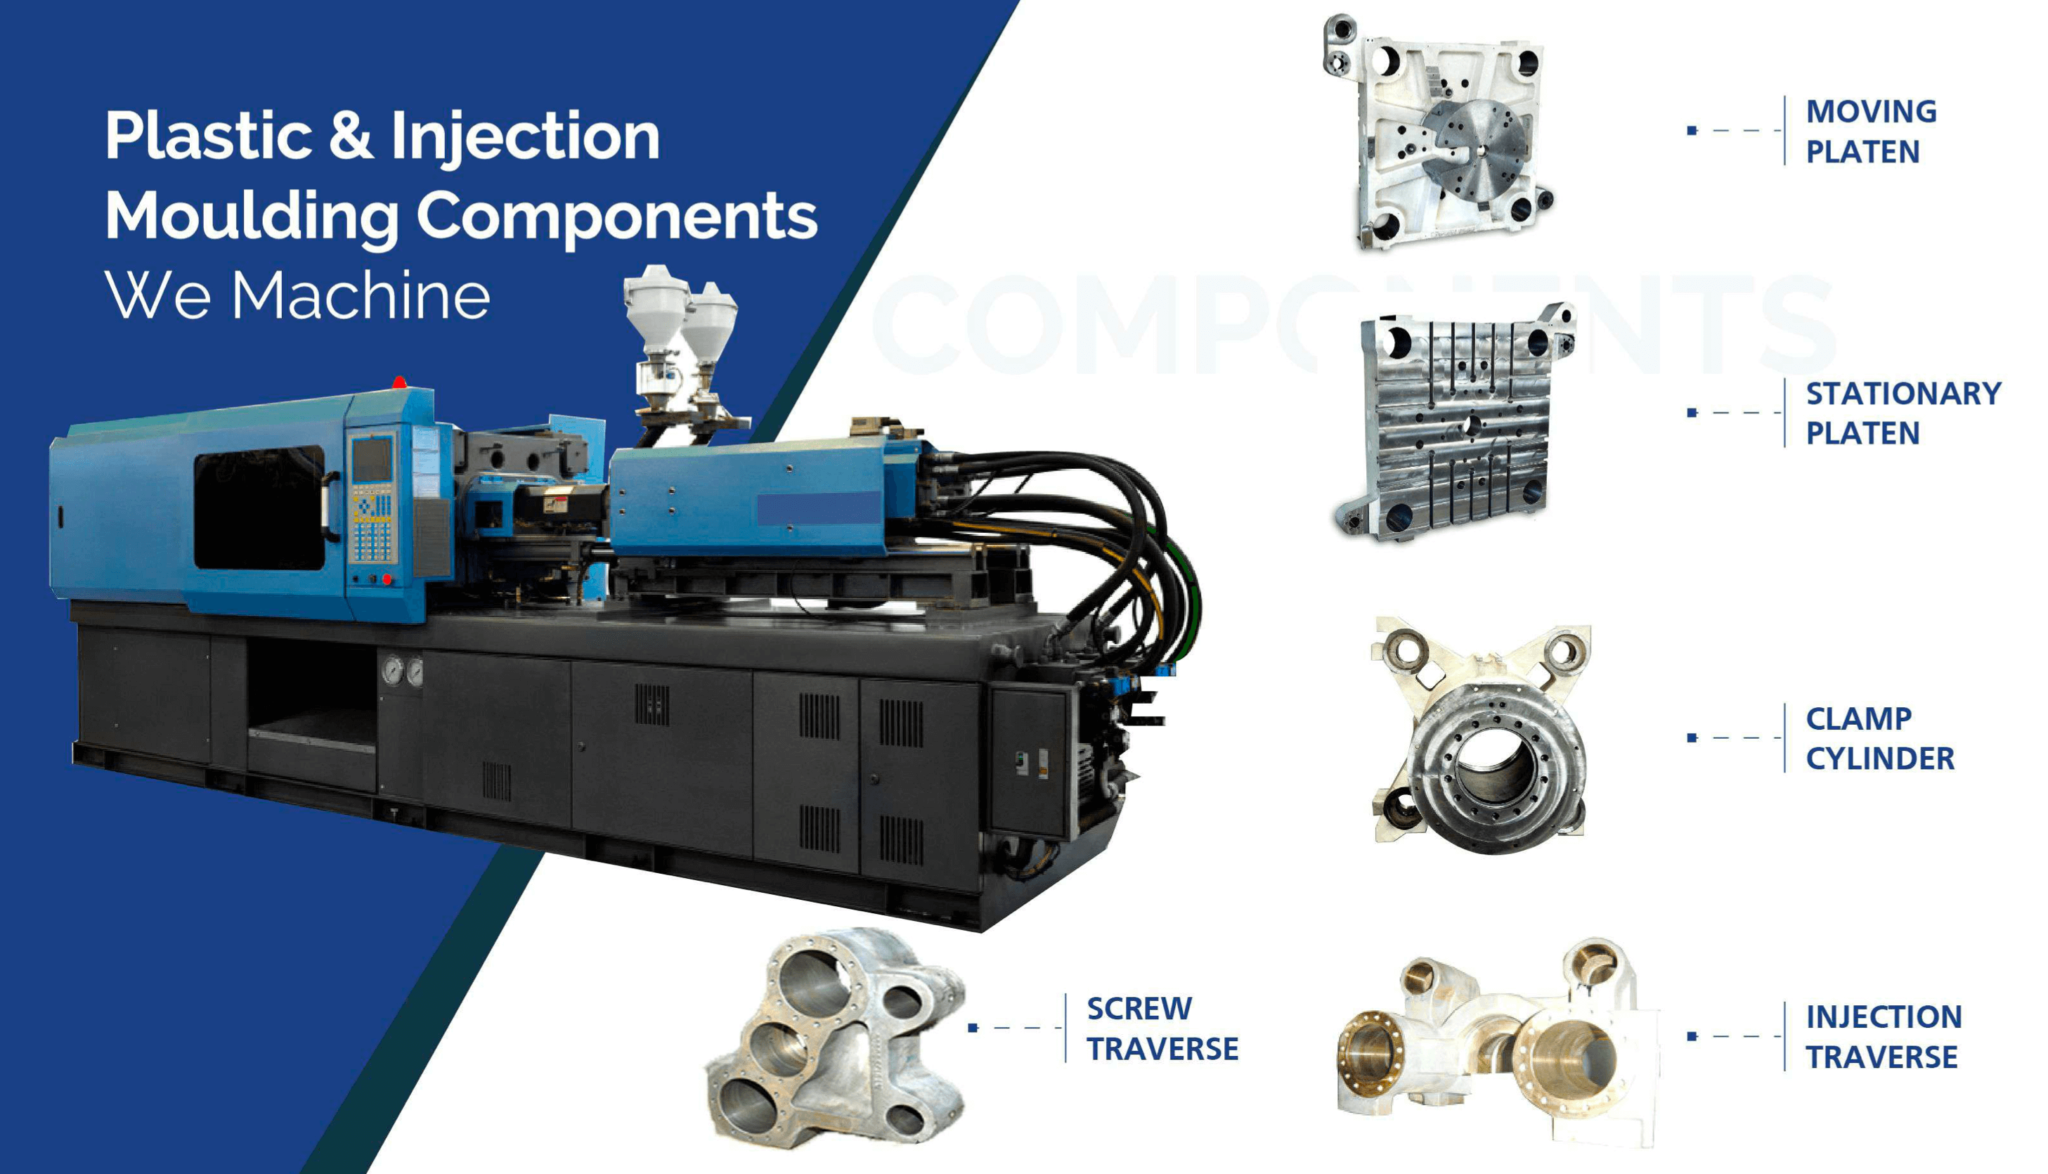 Plastic and injection moulding components